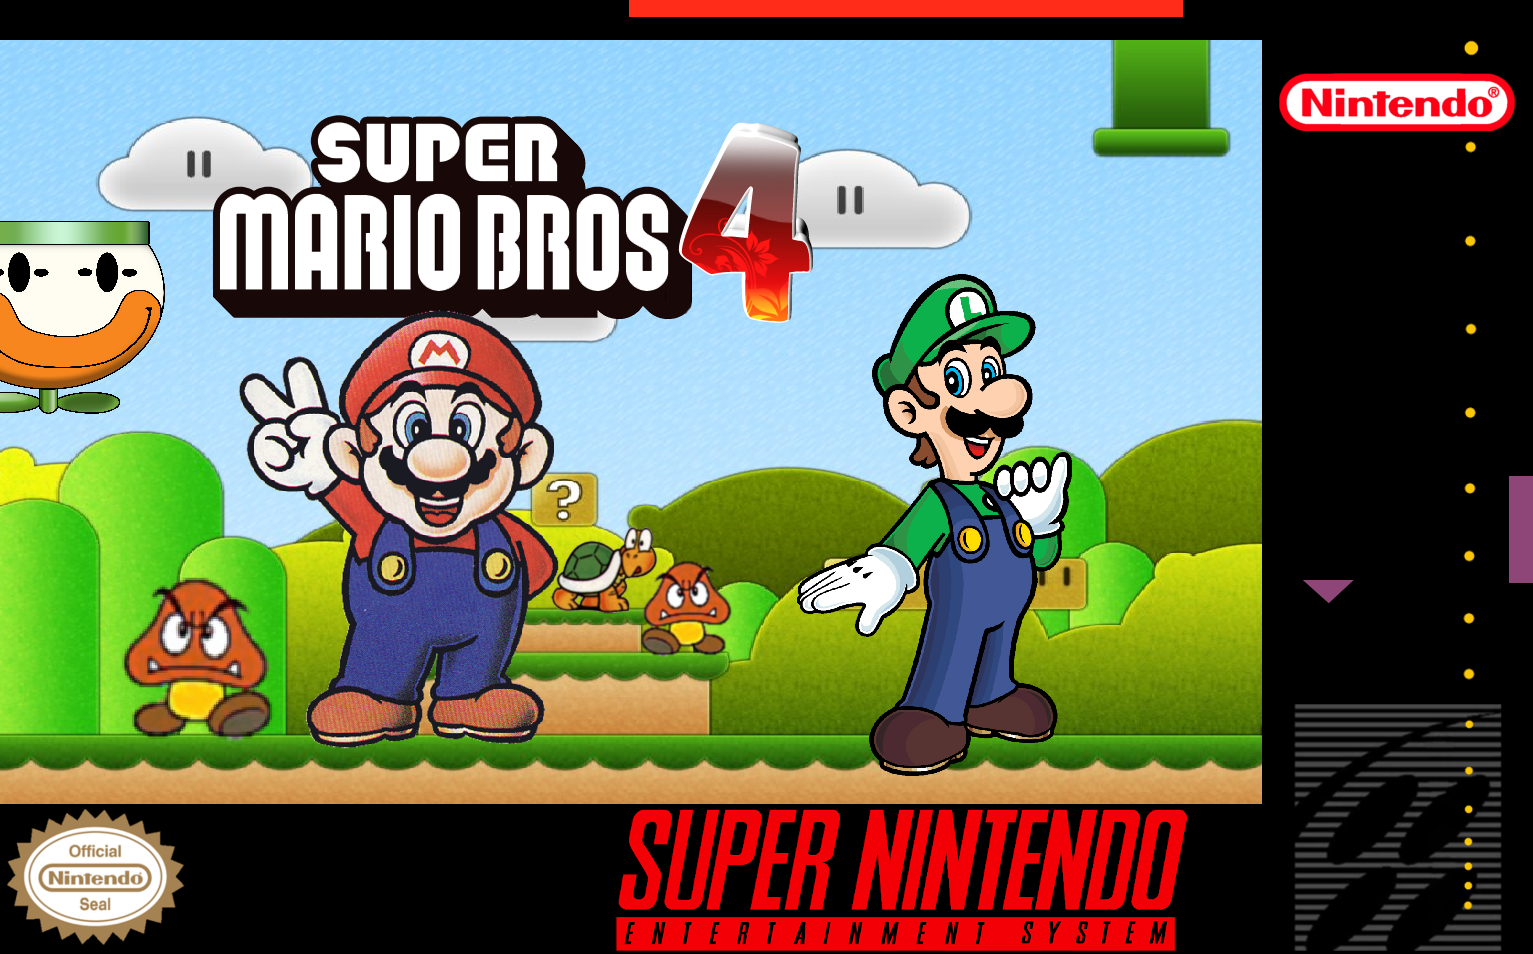 Super Mario Bros 4 | Fantendo - Nintendo Fanon Wiki | FANDOM powered ...